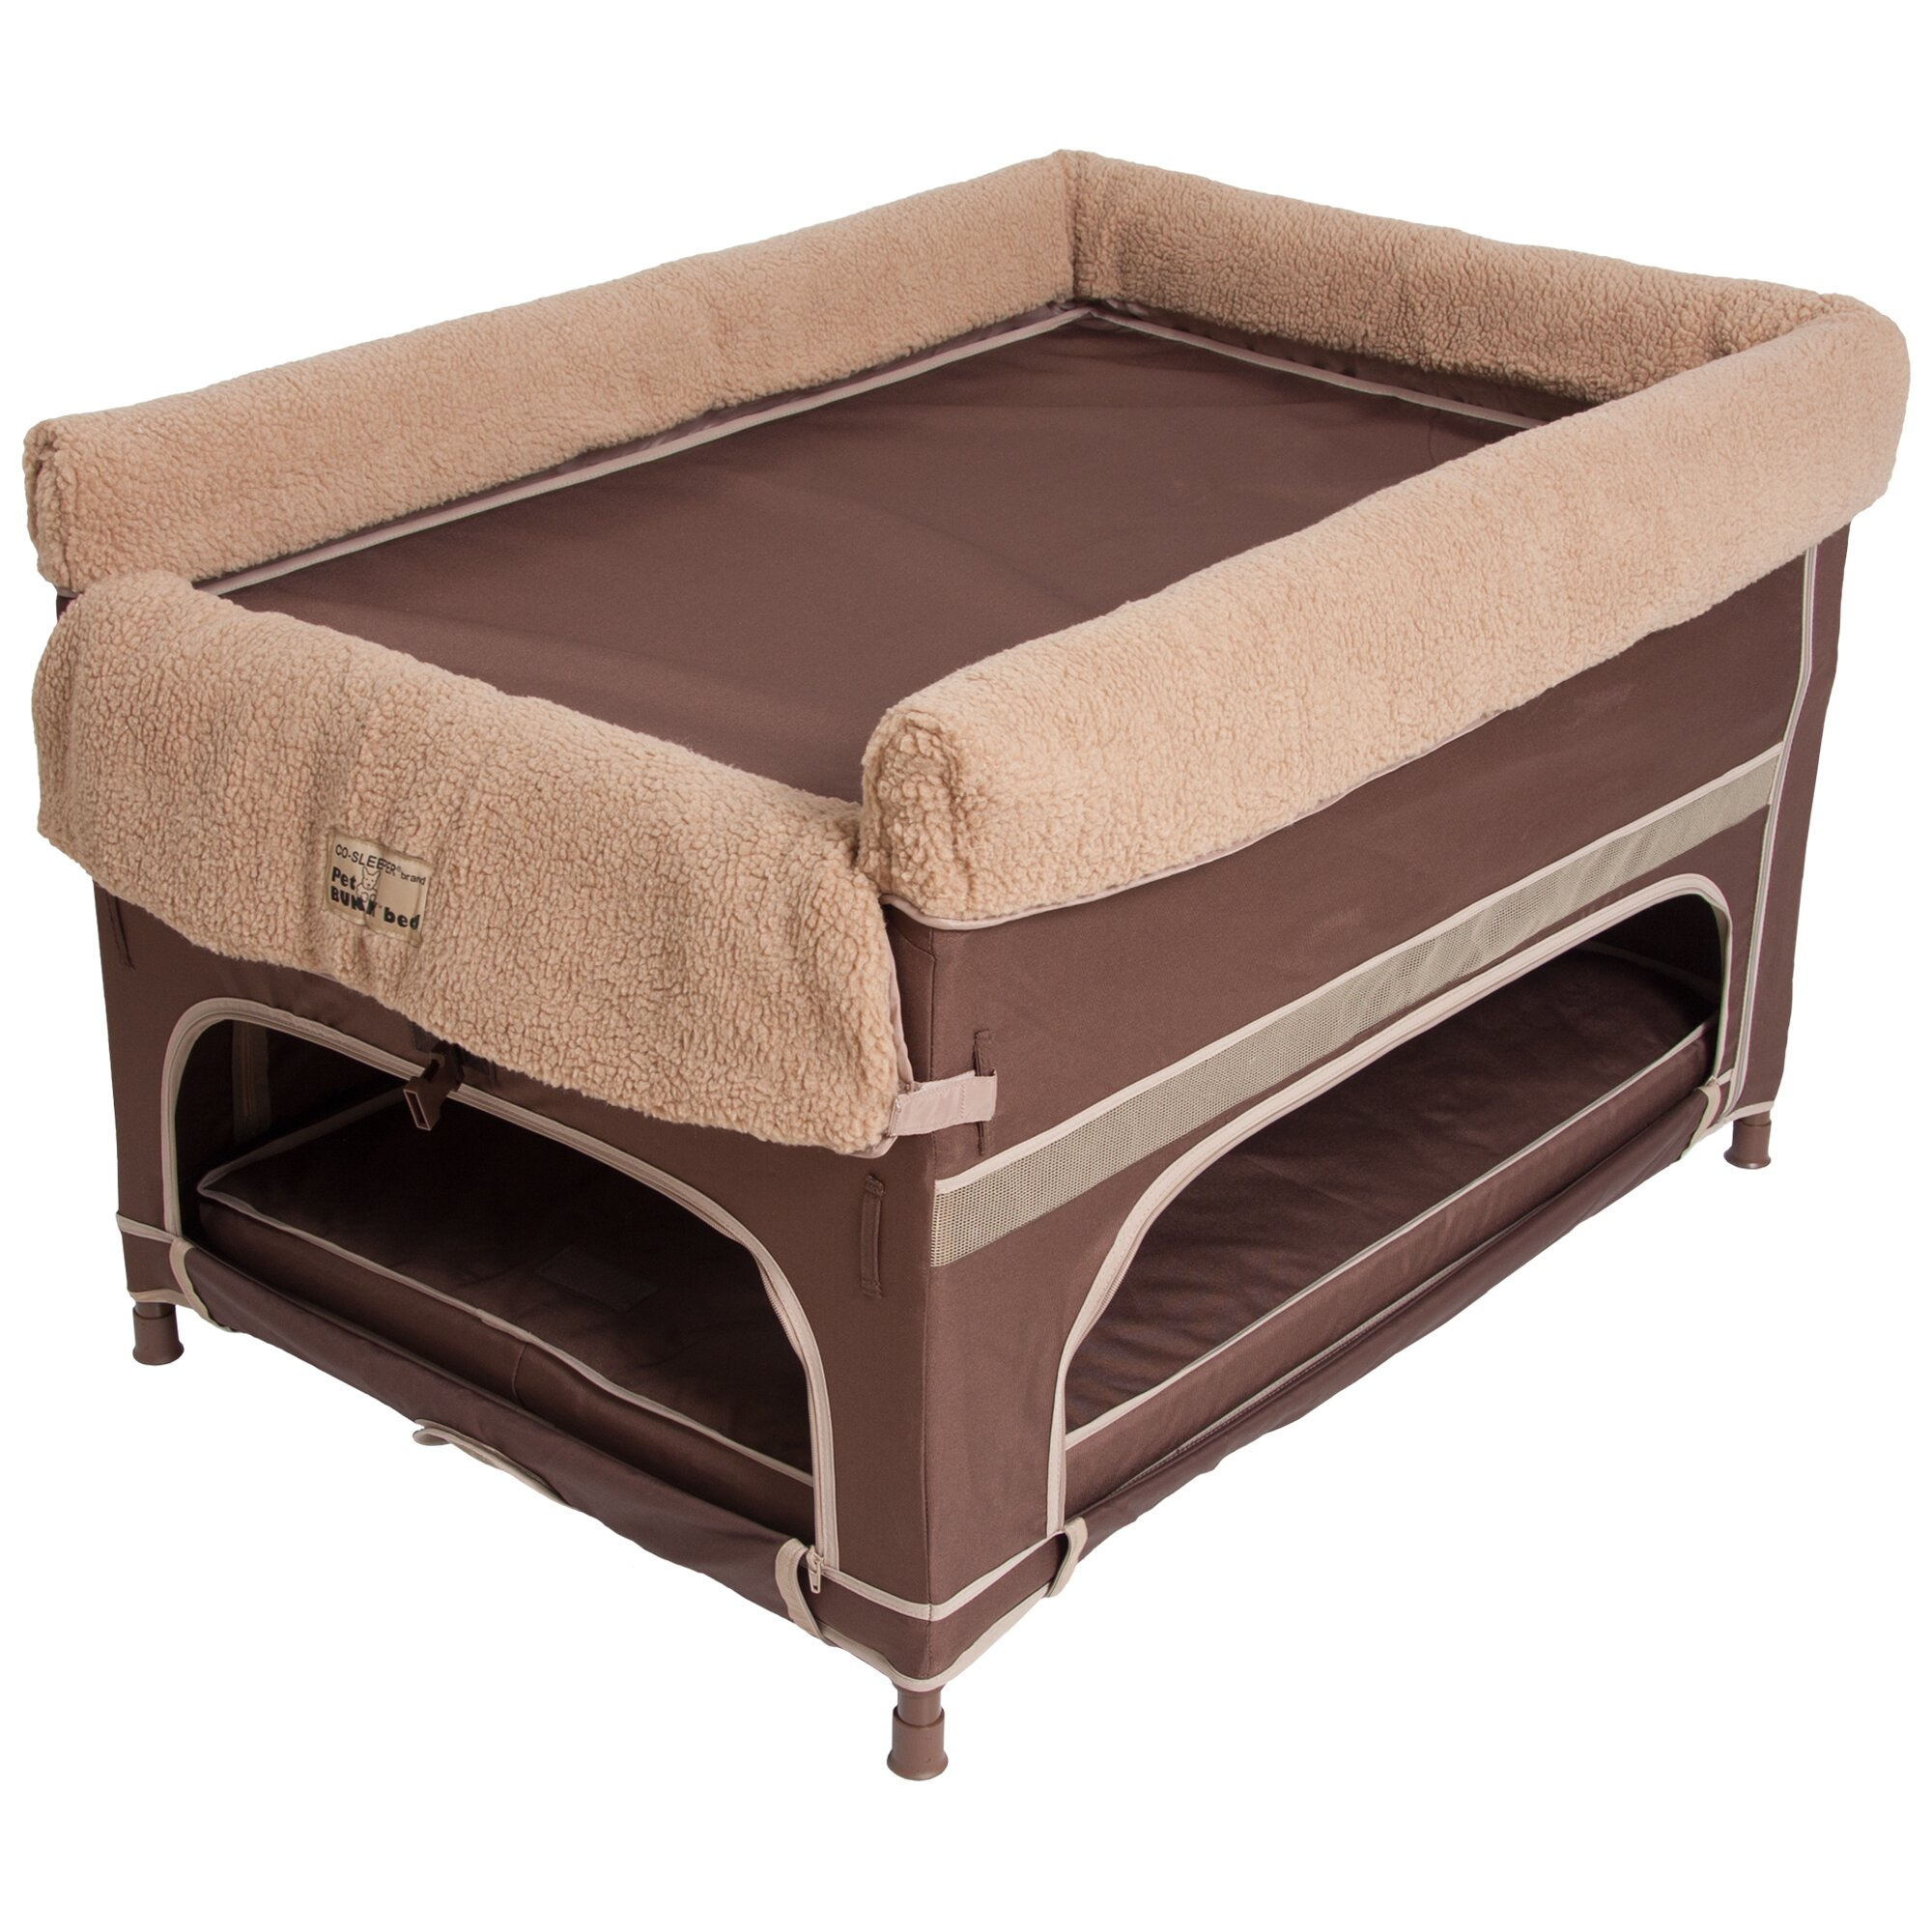 Arm 39 s reach duplex pet bunk dog cot wayfair for Duplex bed